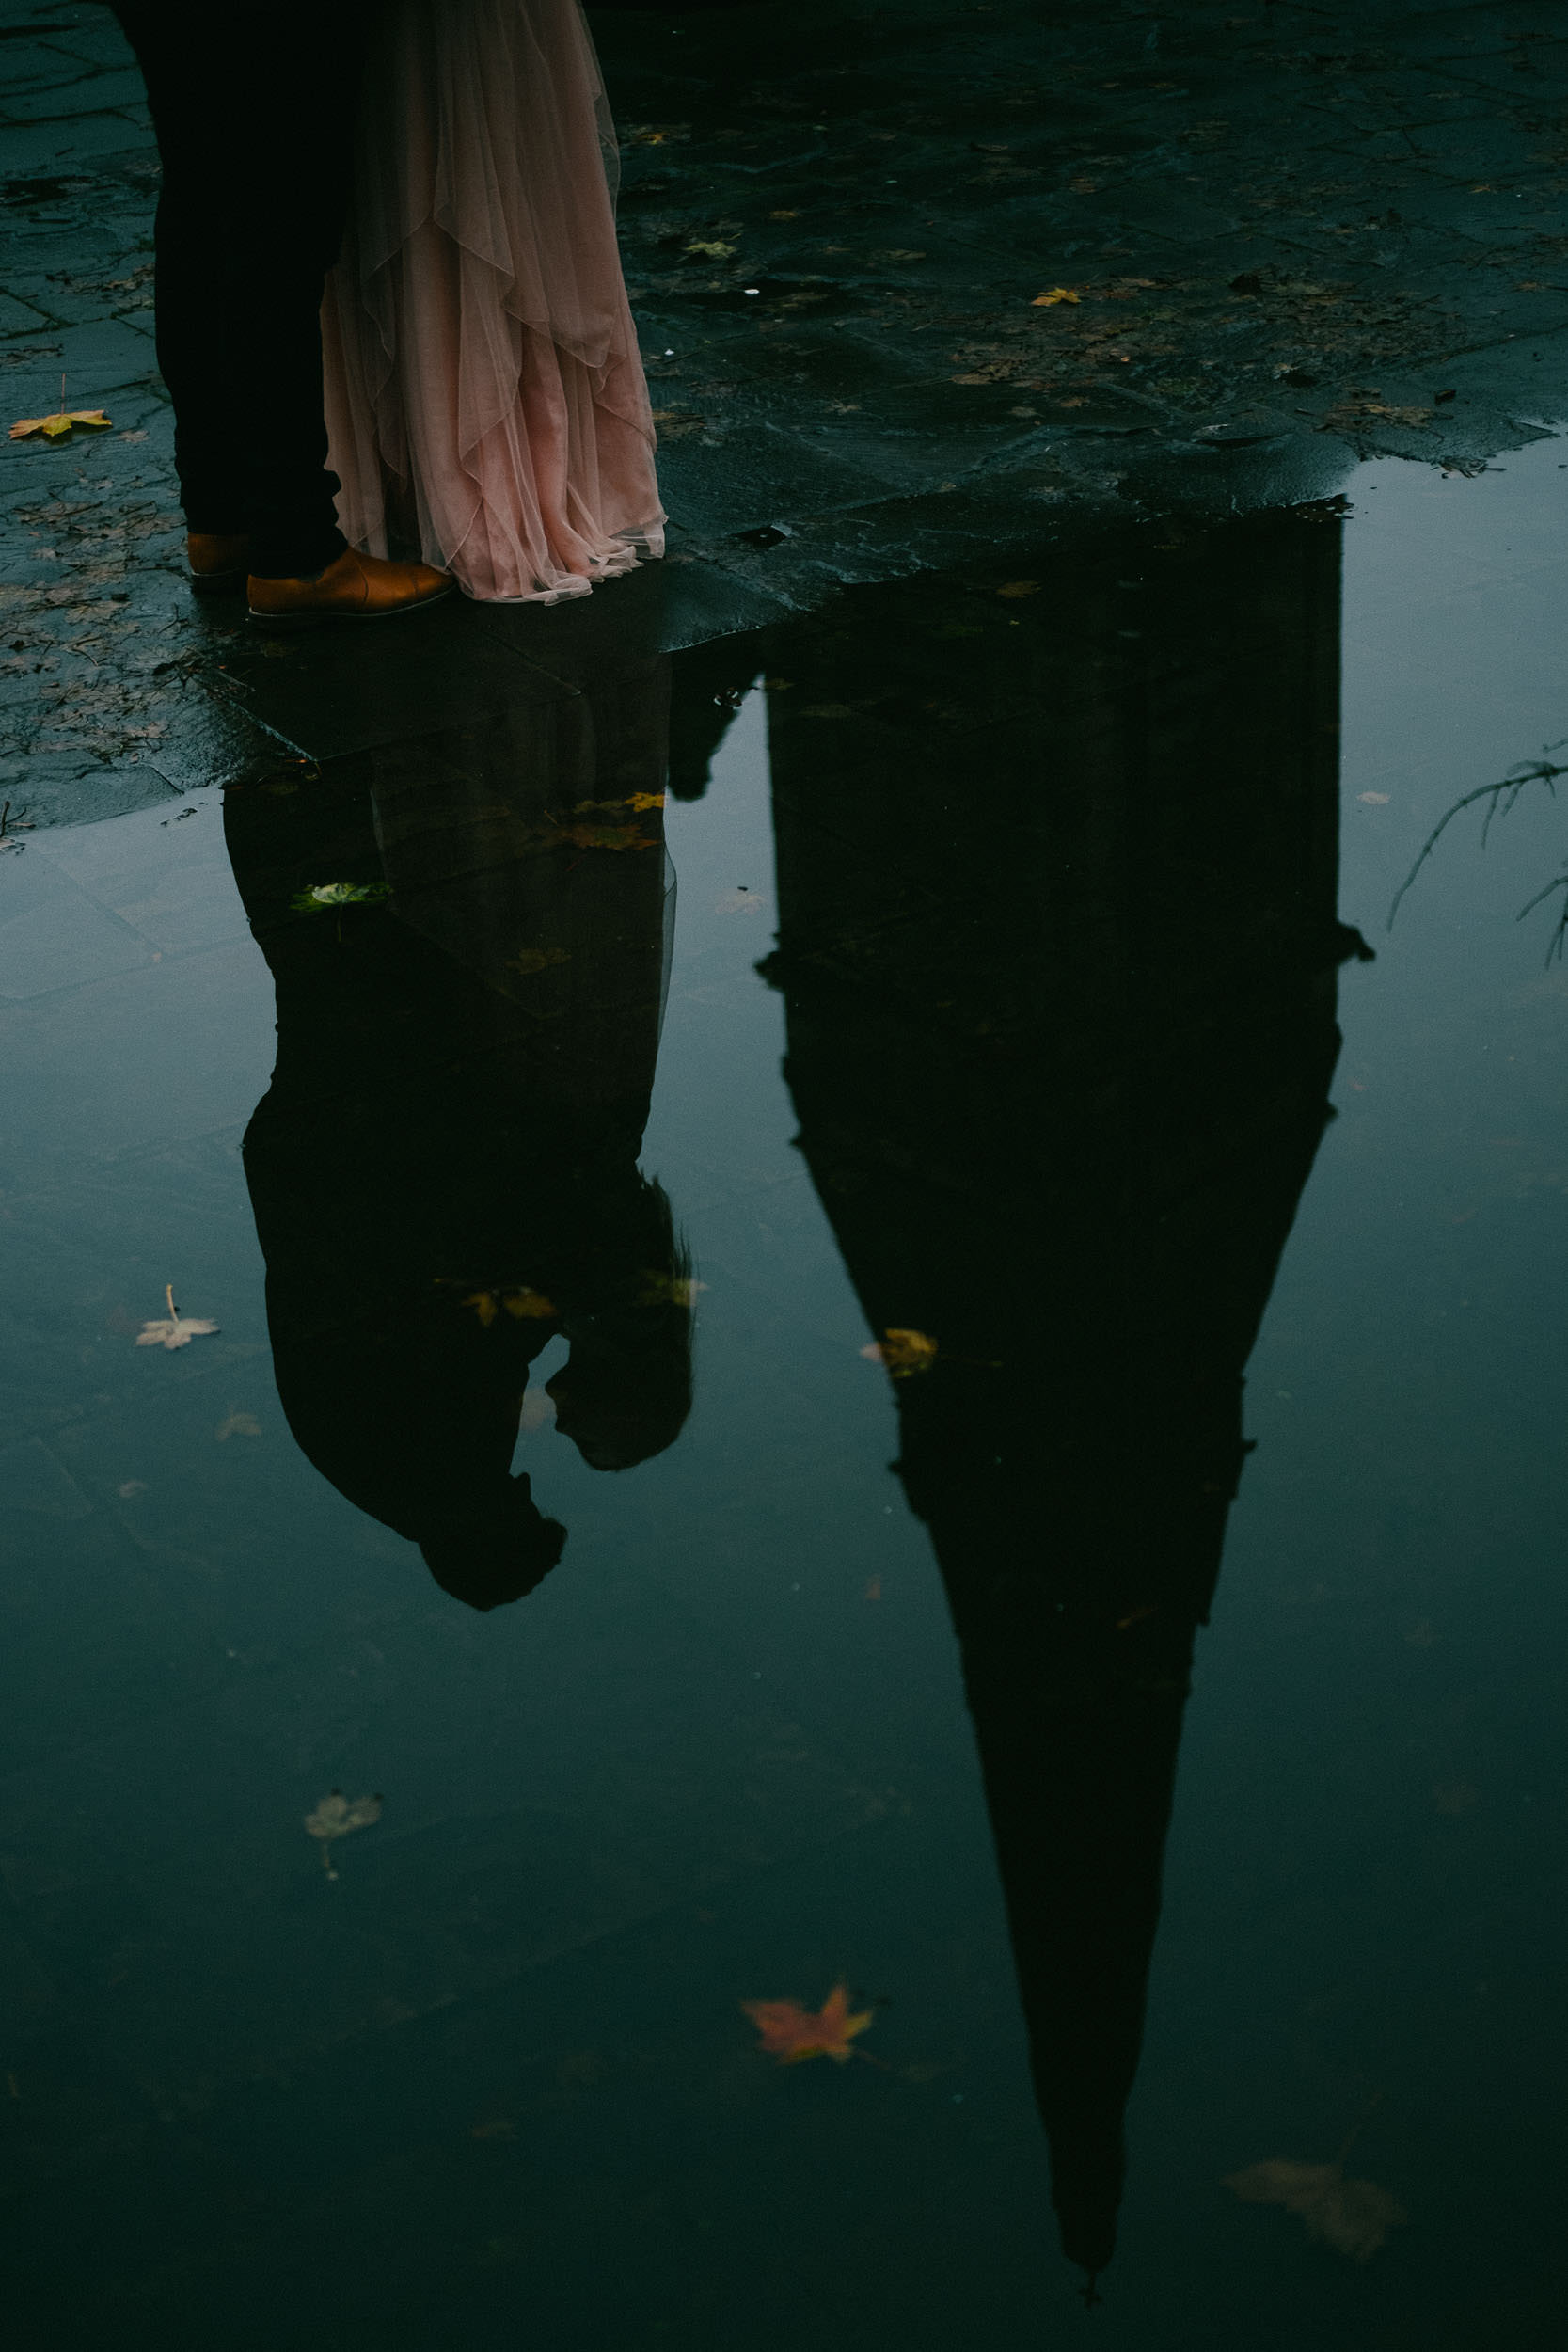 Reflection of pre-wedding couple cuddling in puddle with church spire